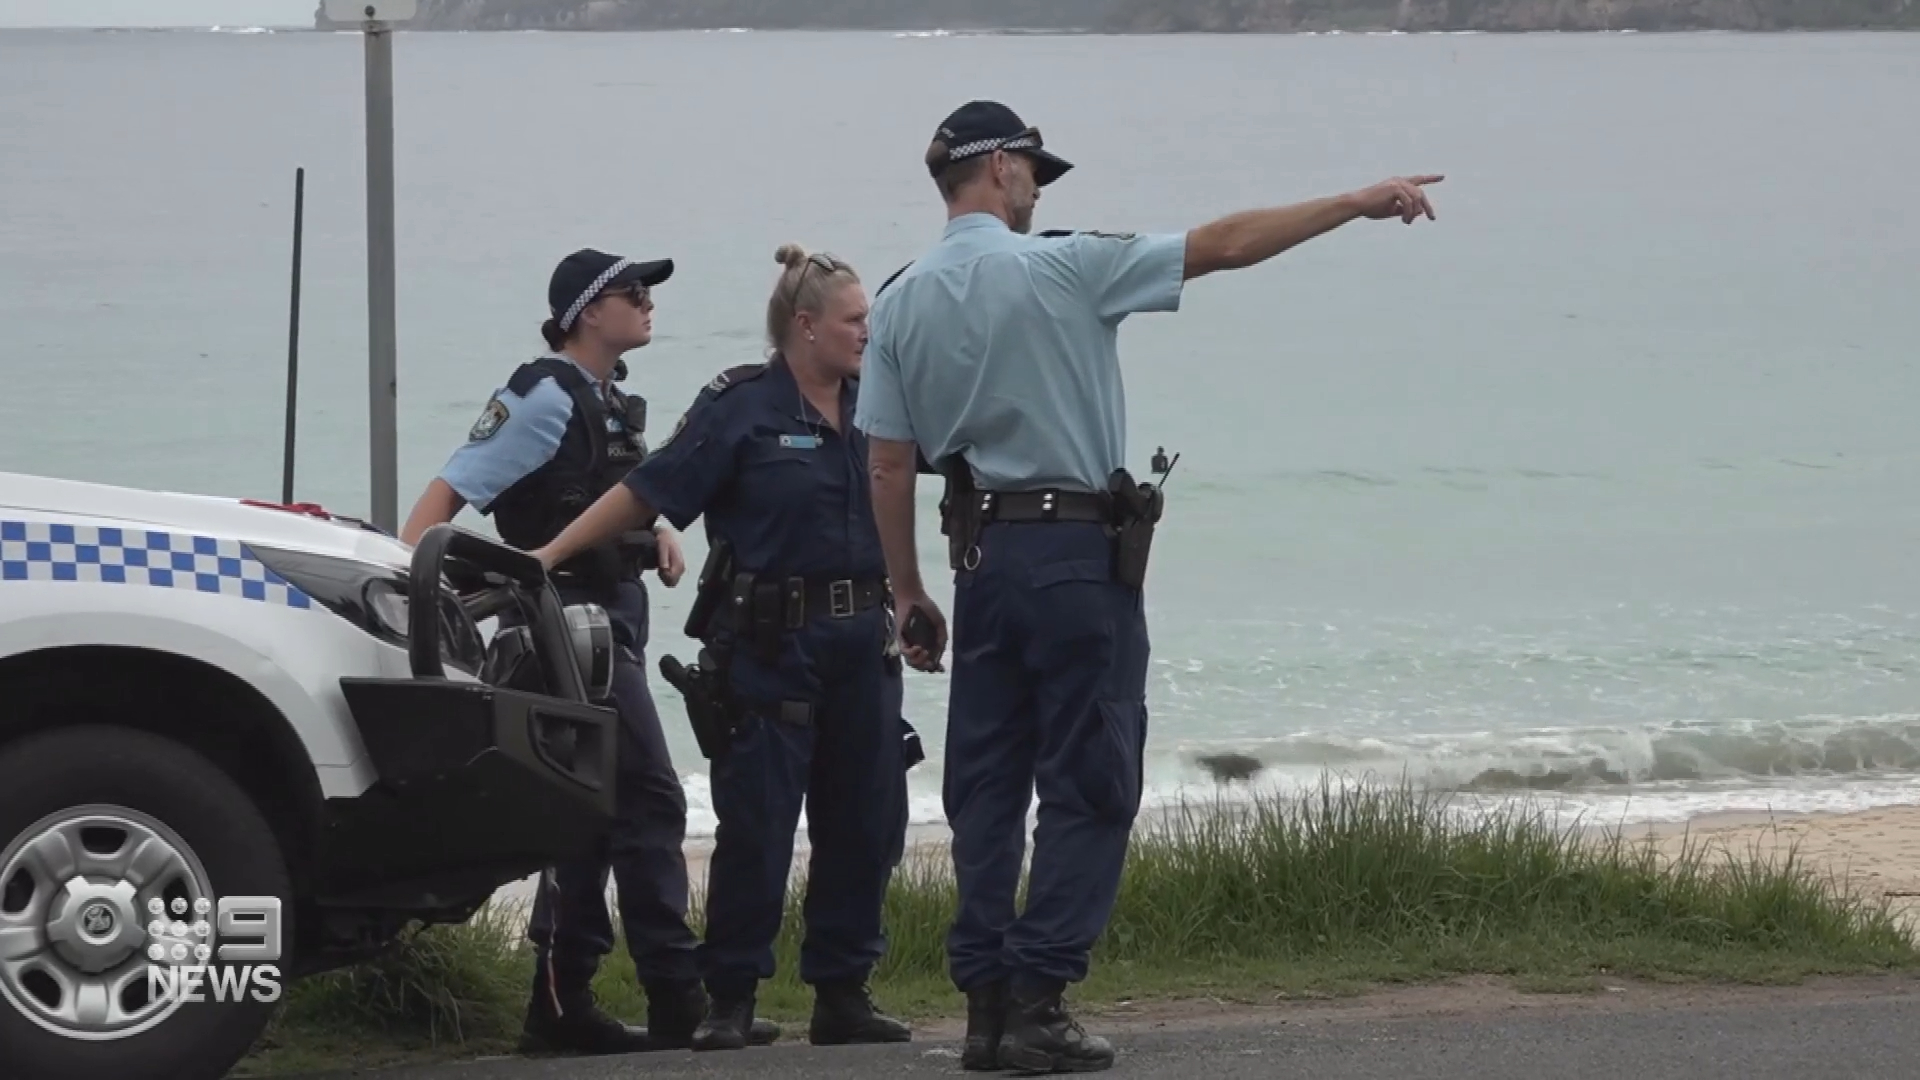 Human remains wash-up on NSW beach